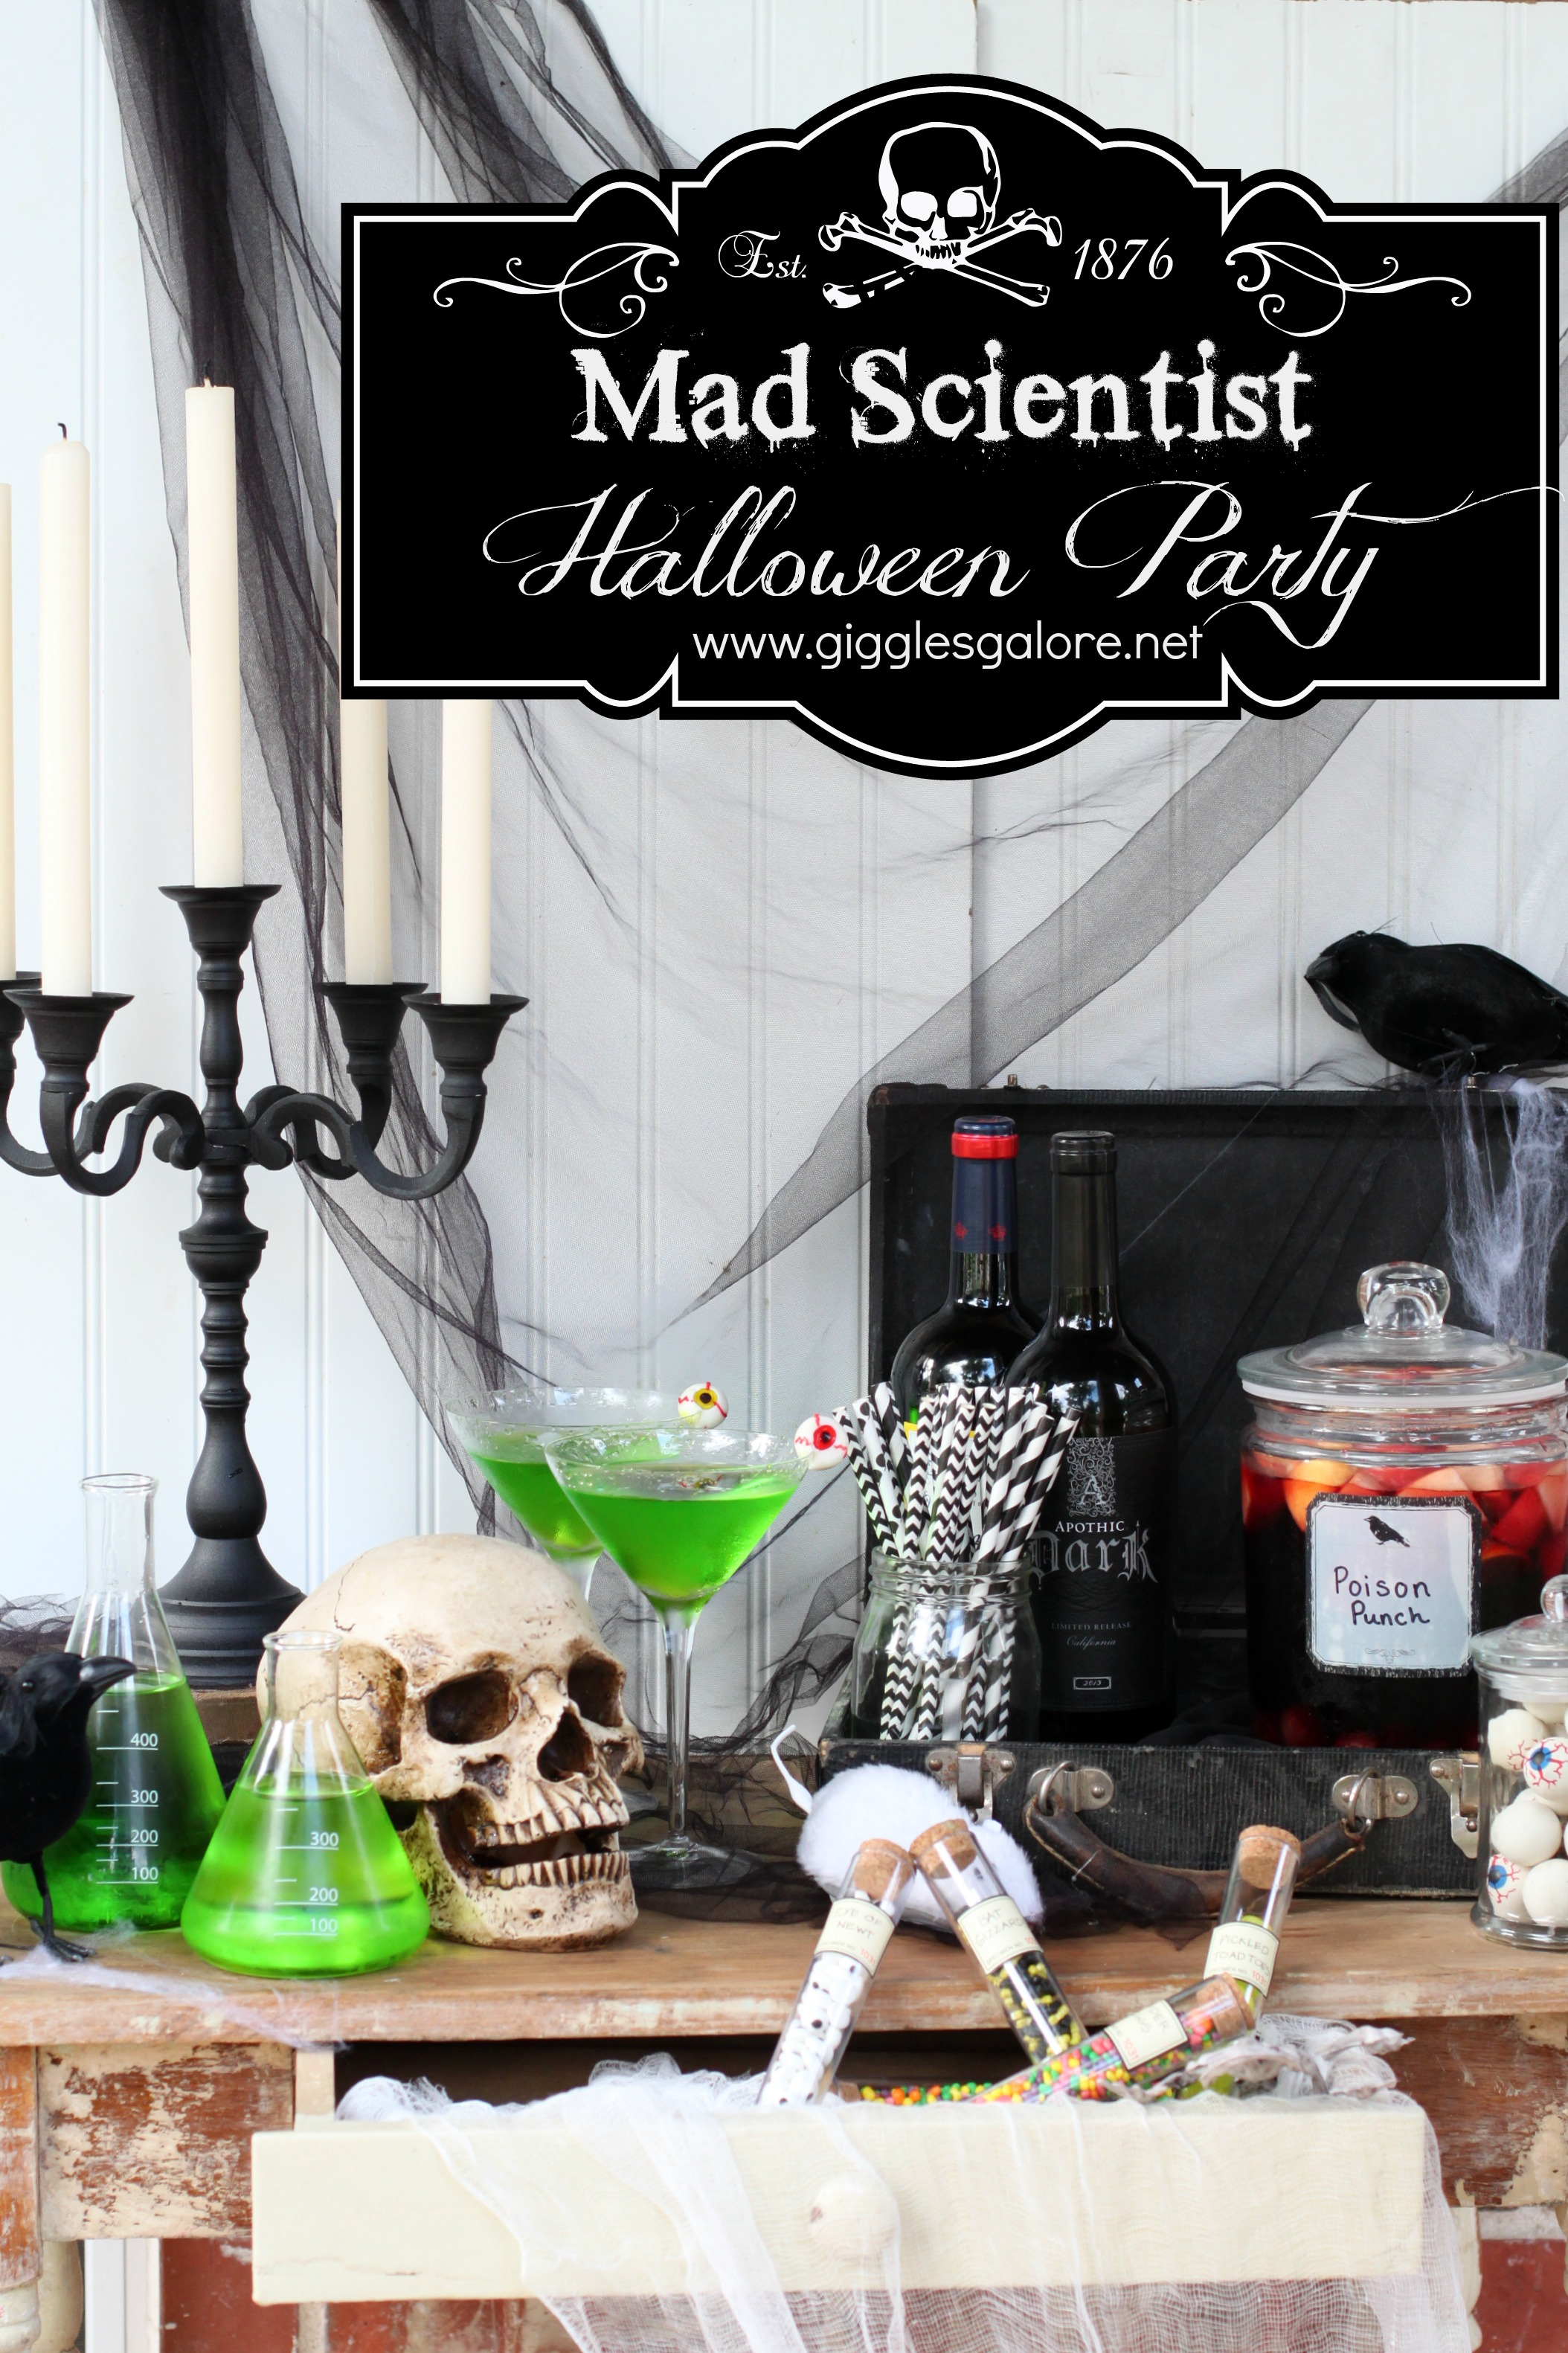 Halloween Mad Scientist Lab Decorations  from gigglesgalore.net